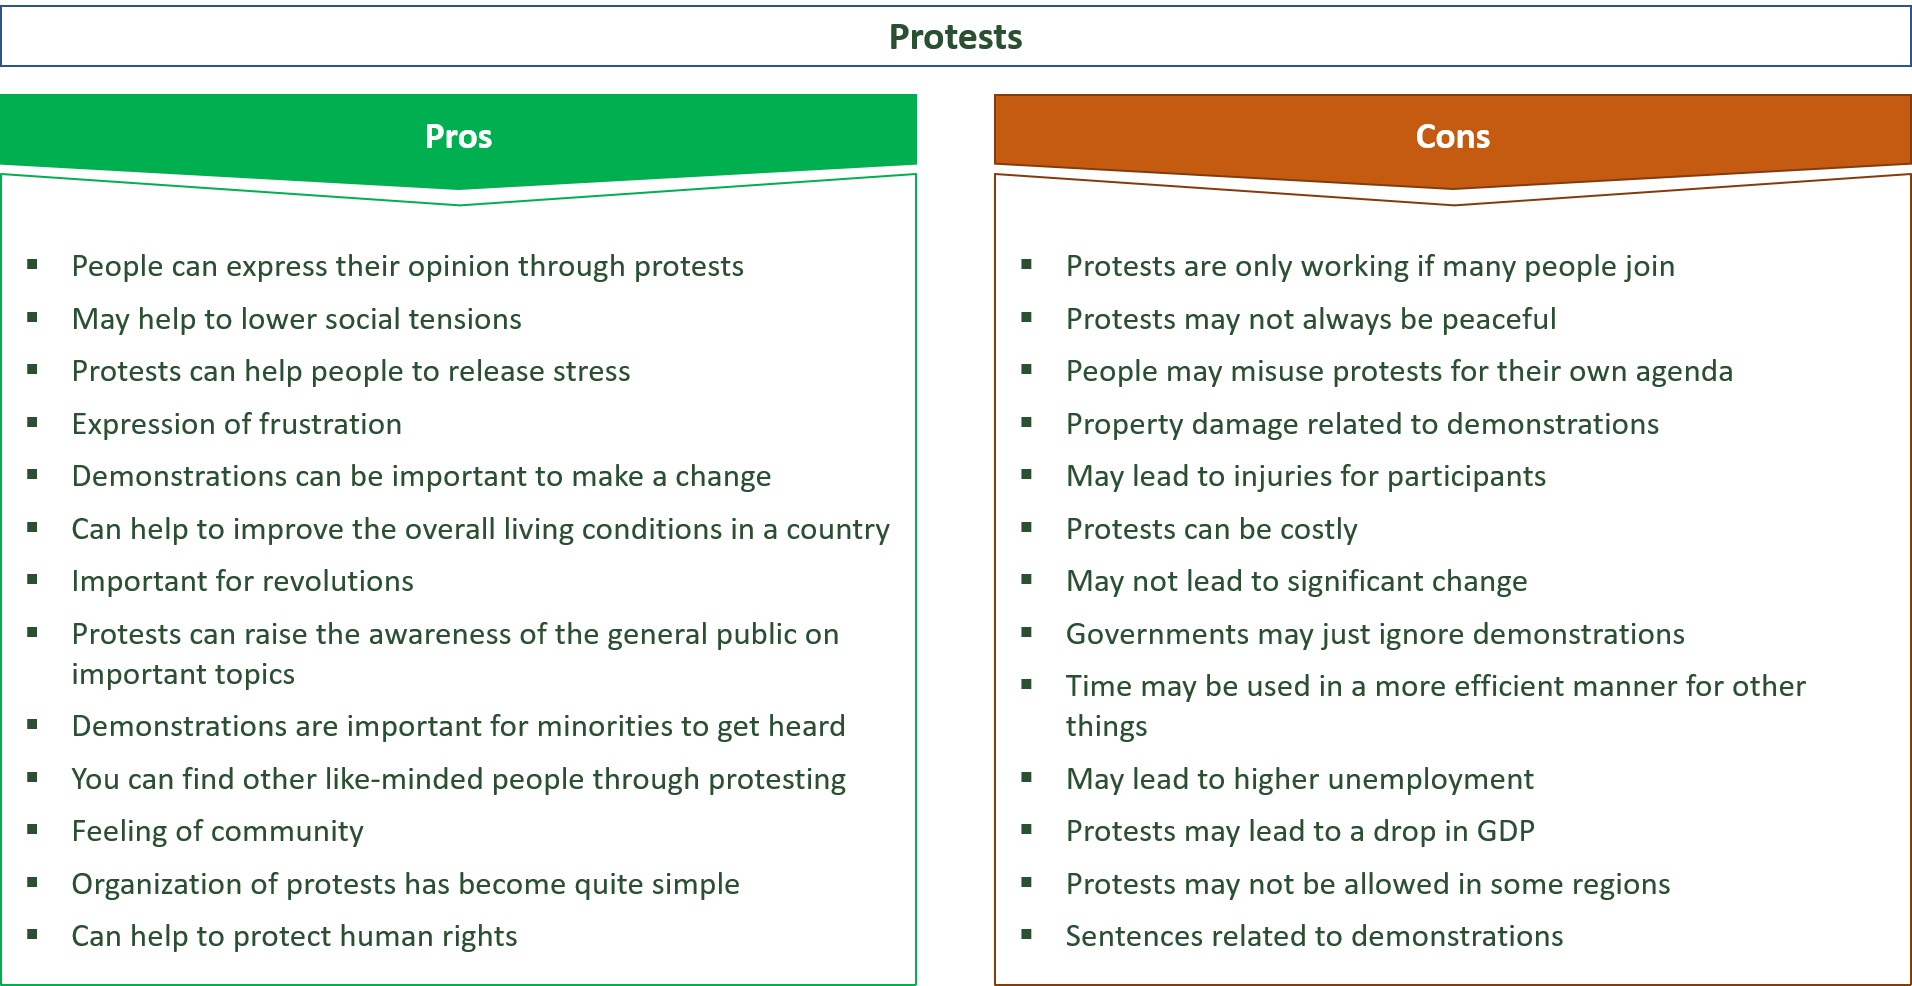 advantages and disadvantages of protests and demonstrations